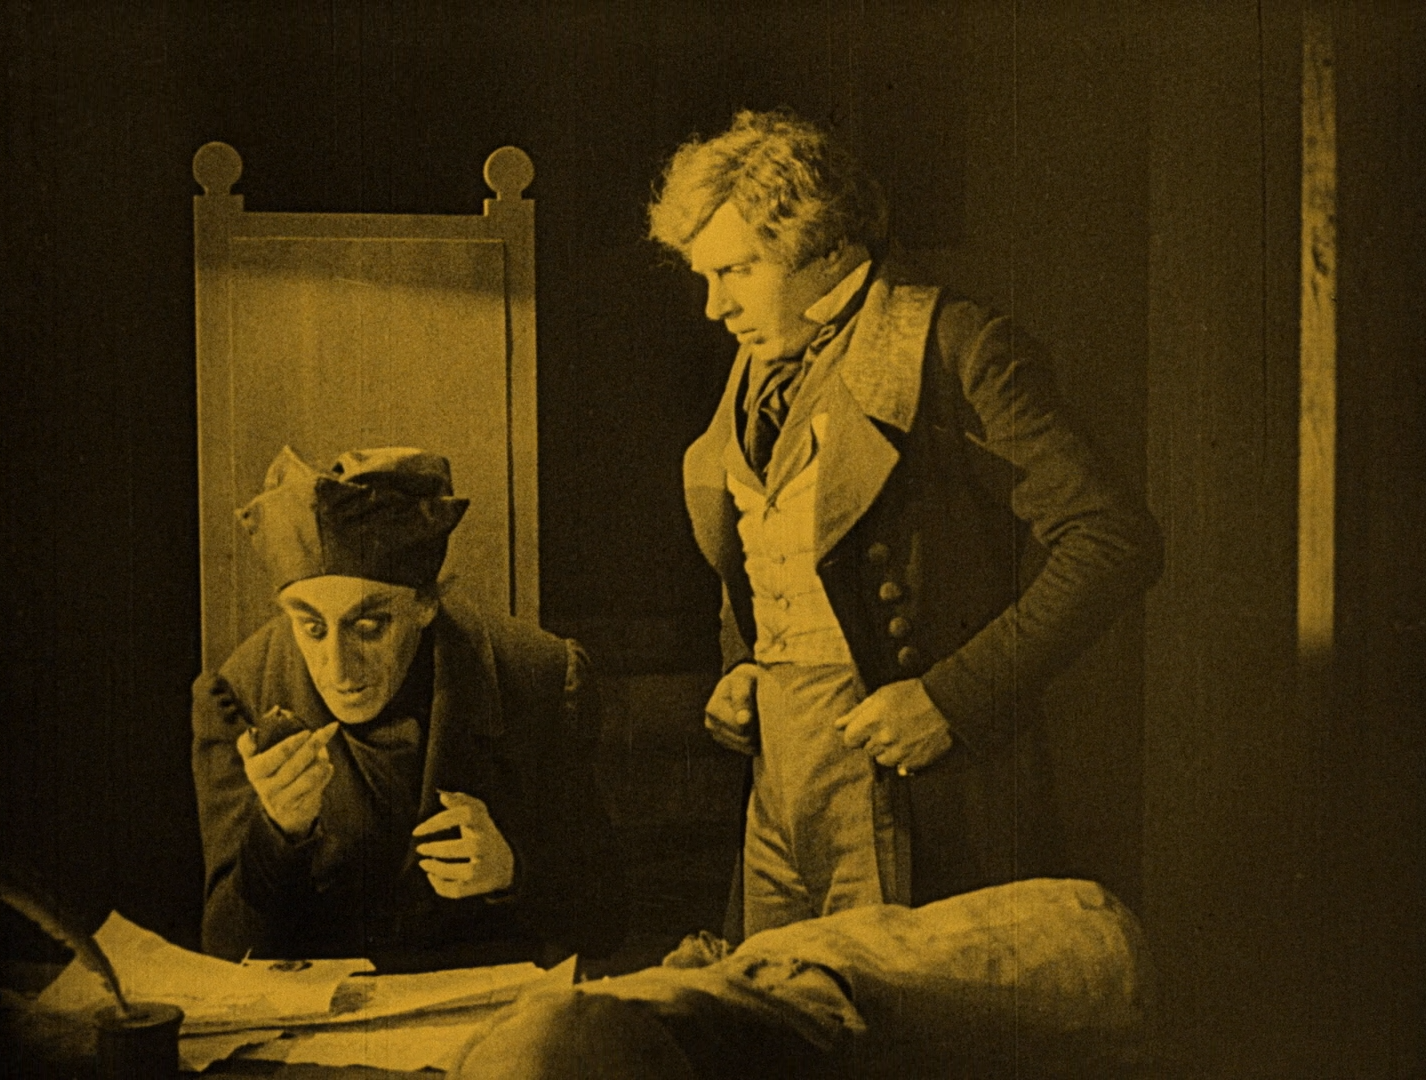 Pictures of nosferatu 1922 Detective-Mystery Films - Filmsite. org